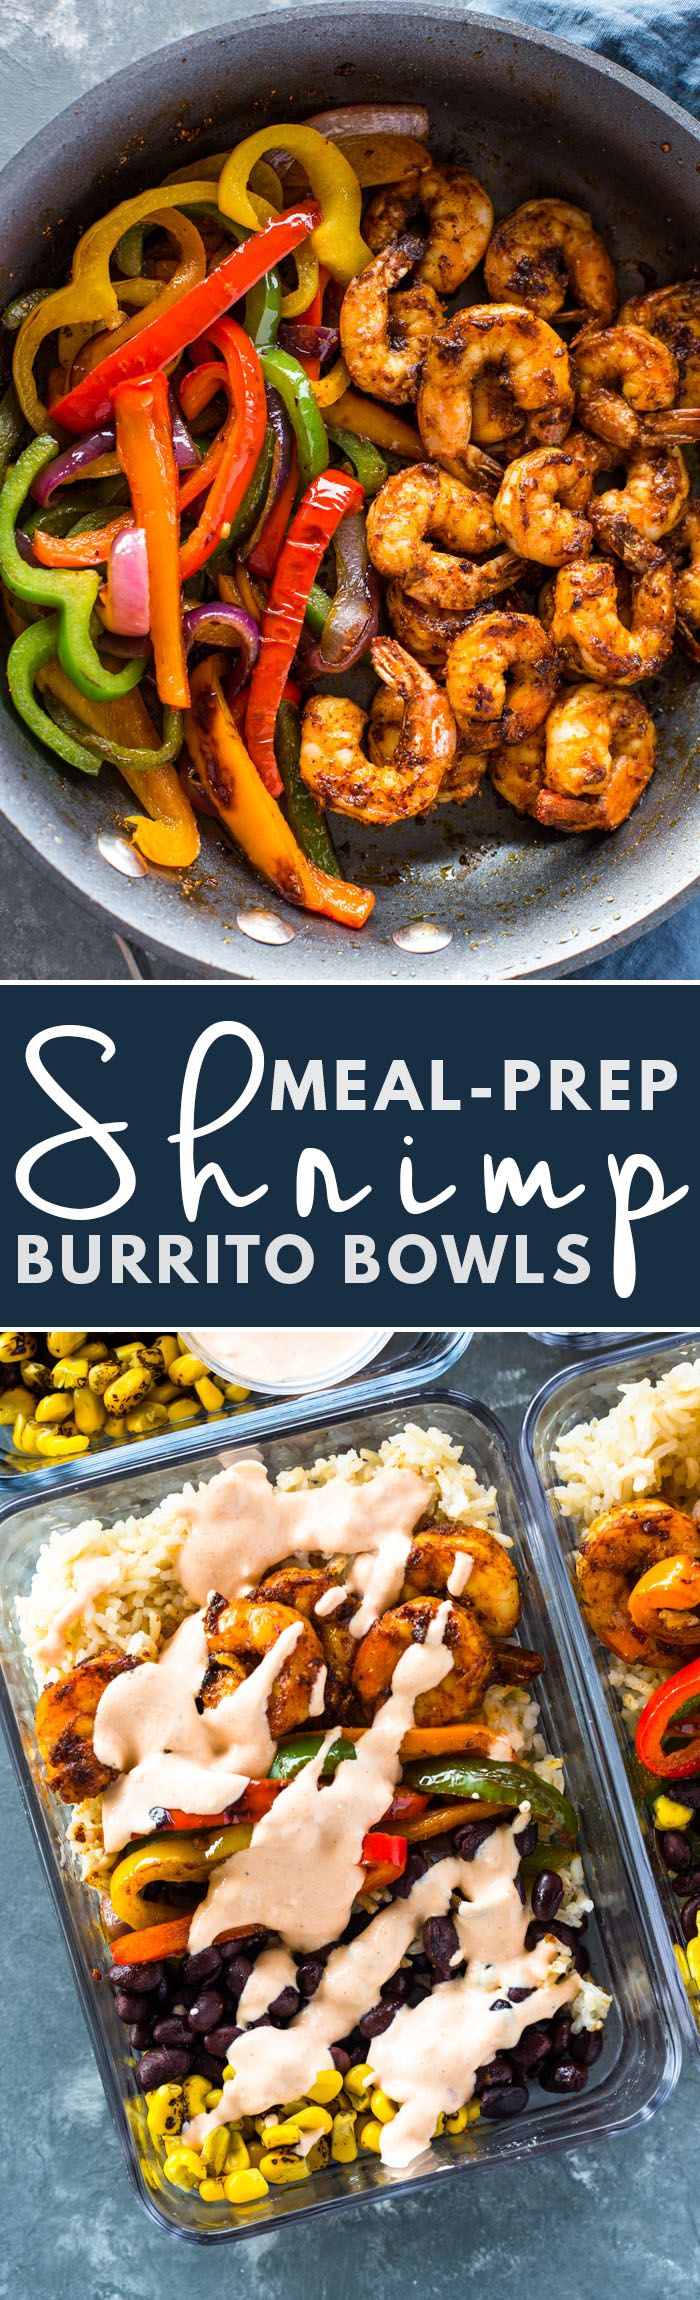 Meal-Prep Shrimp Burrito Bowls, Rice with peppers, shrimp, black beans, roasted corn, light sour cream or burrito sauce